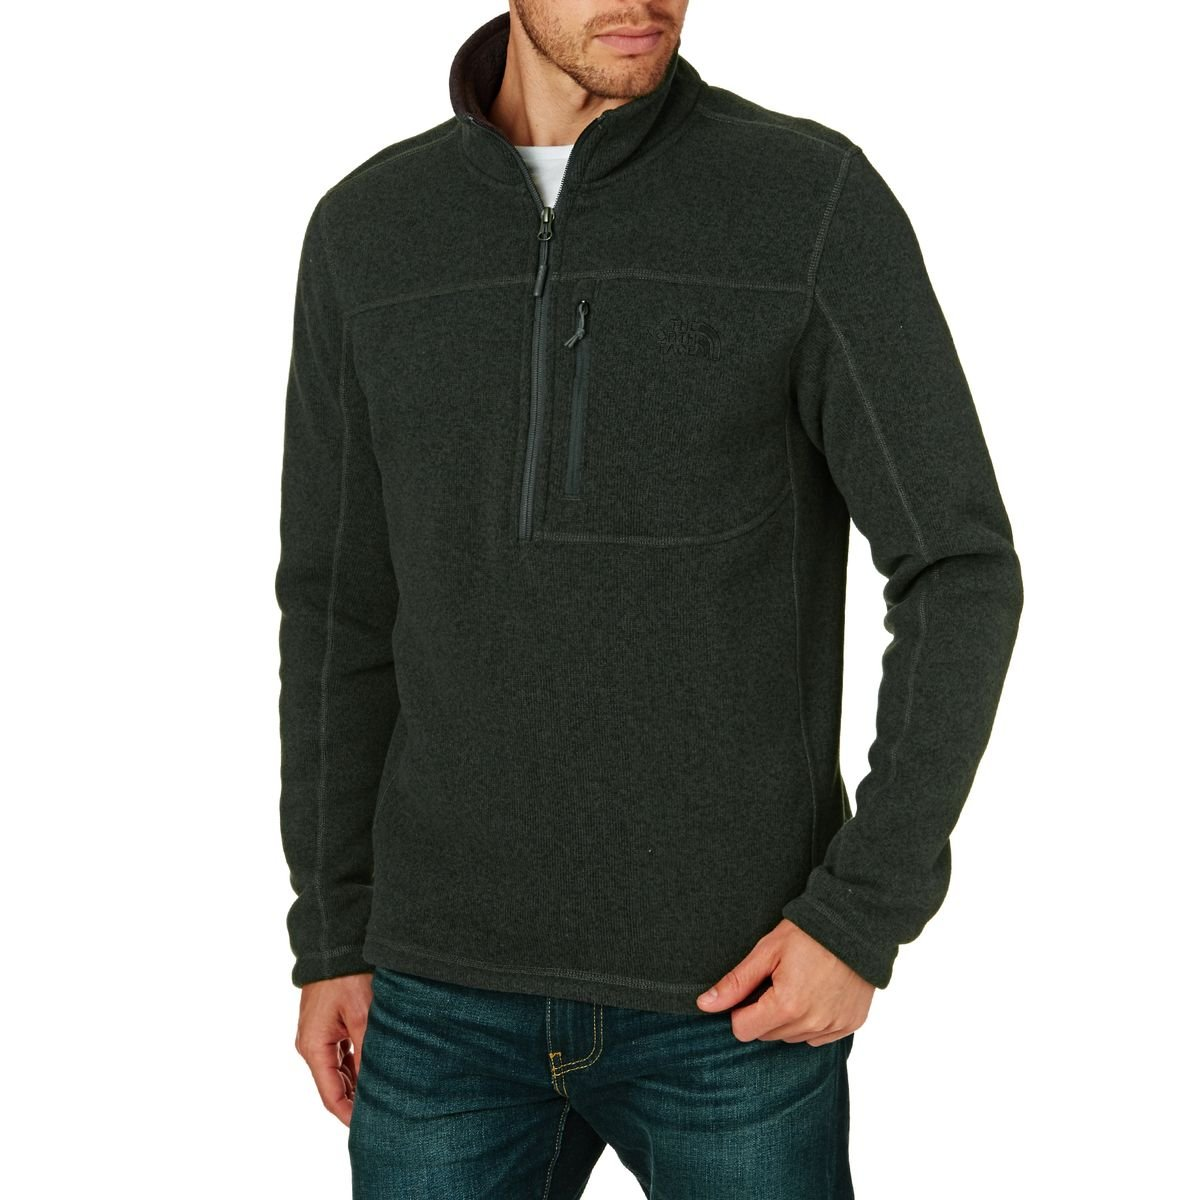 THE NORTH FACE Herren M Gordon Lyons 1/4 Zip Fleece-Pullover